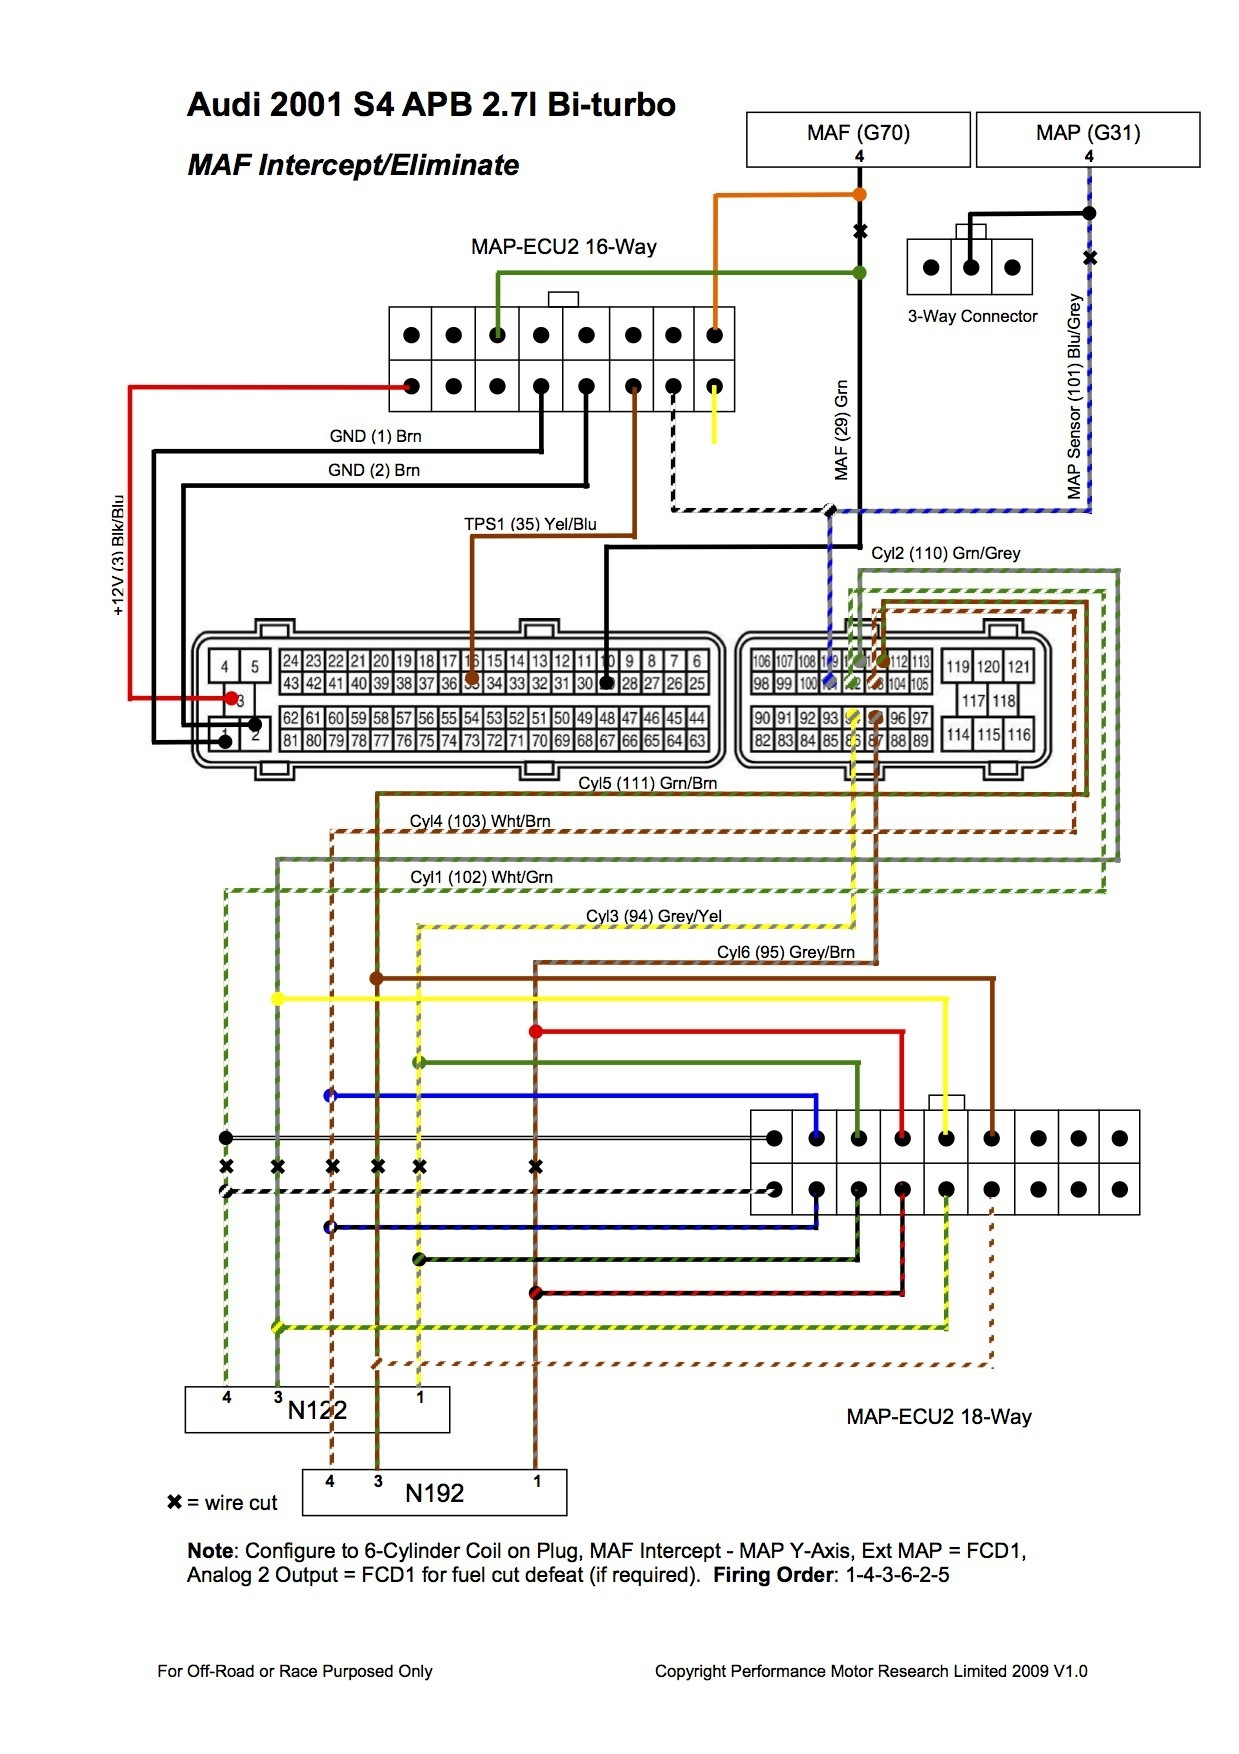 Home Speaker System Wiring Diagram Free Picture Just Another Volume Control To A Rh W23 Mo Stein De